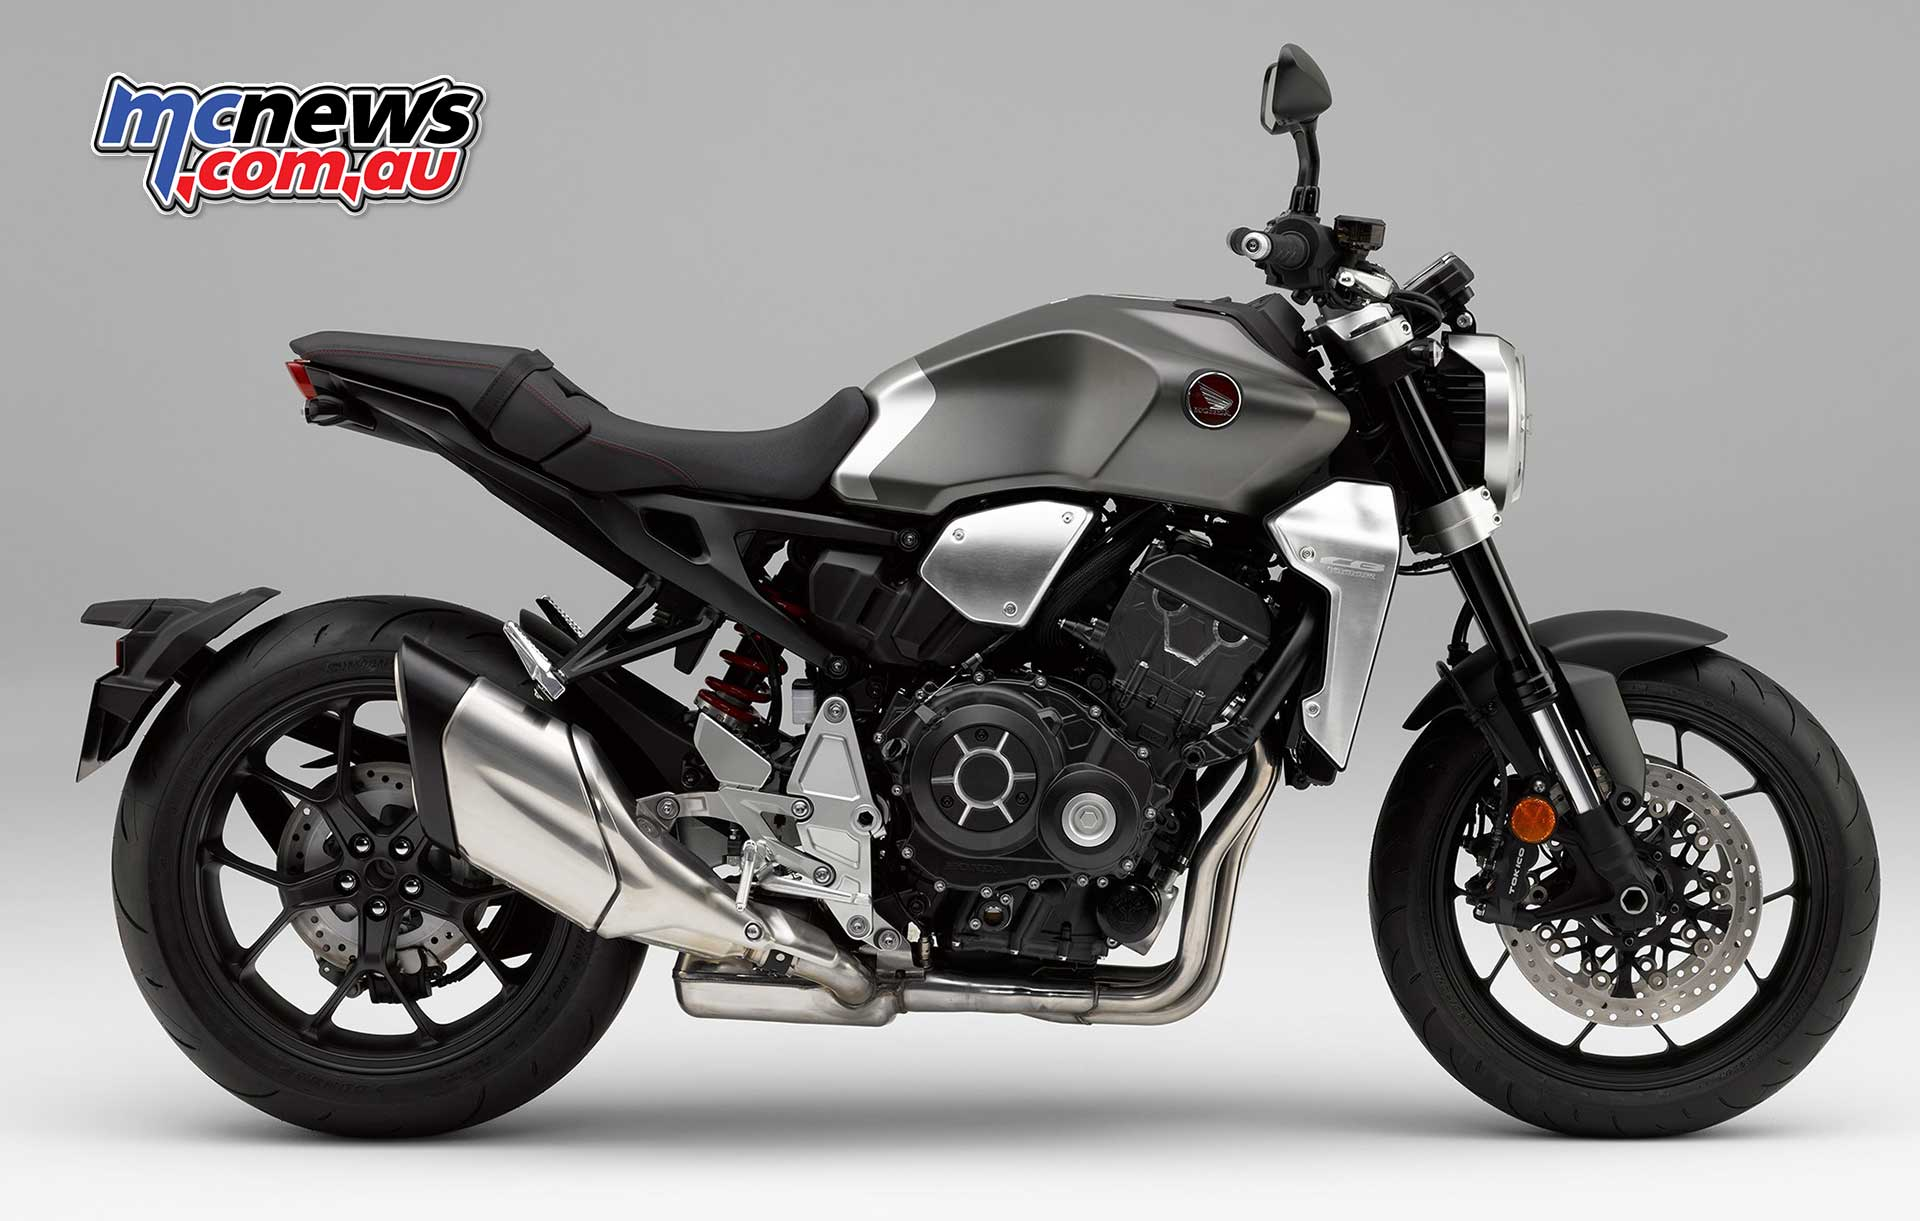 2018 Honda Cb1000r Arriving This Month At 16 499 Mcnews